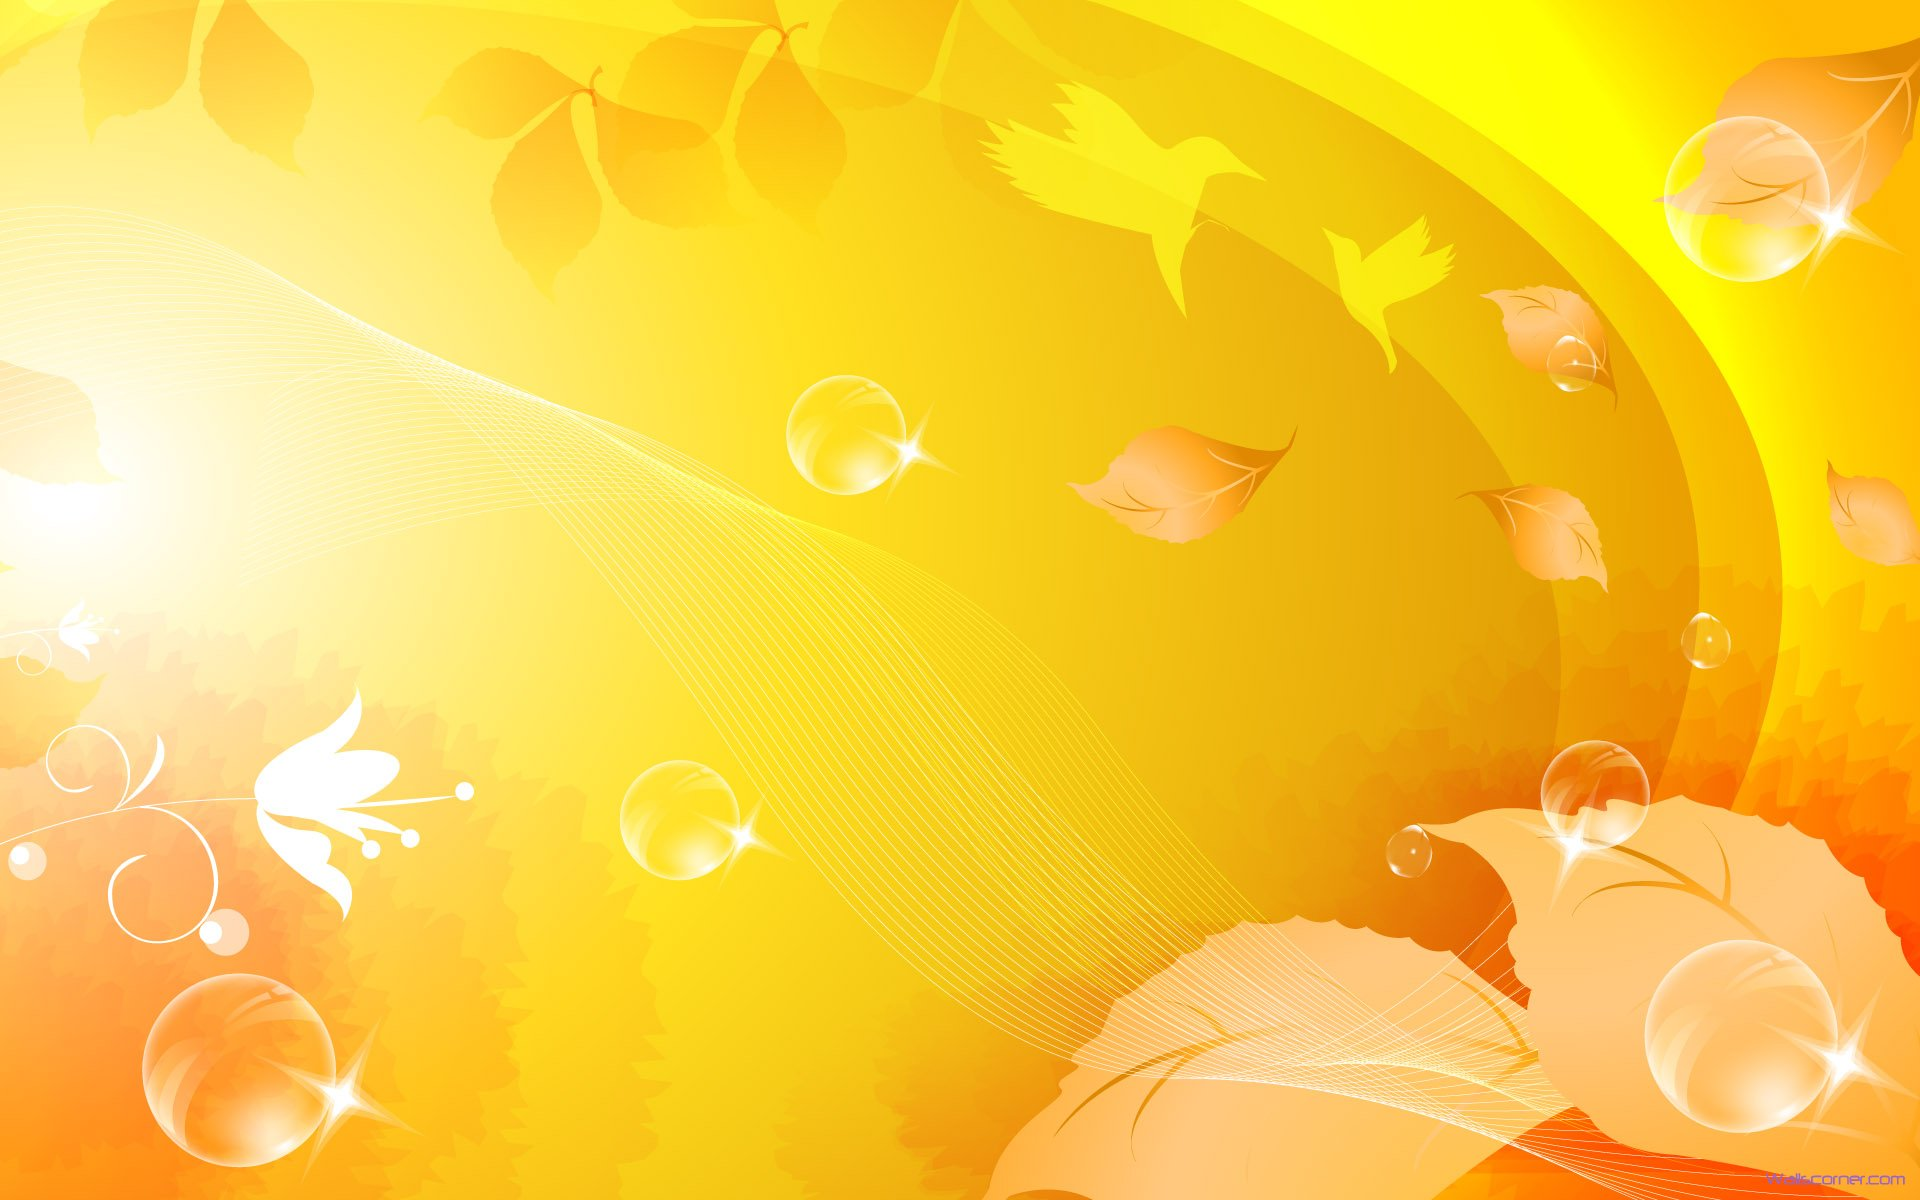 Leave Yellow Abstract Wallpaper Background In High